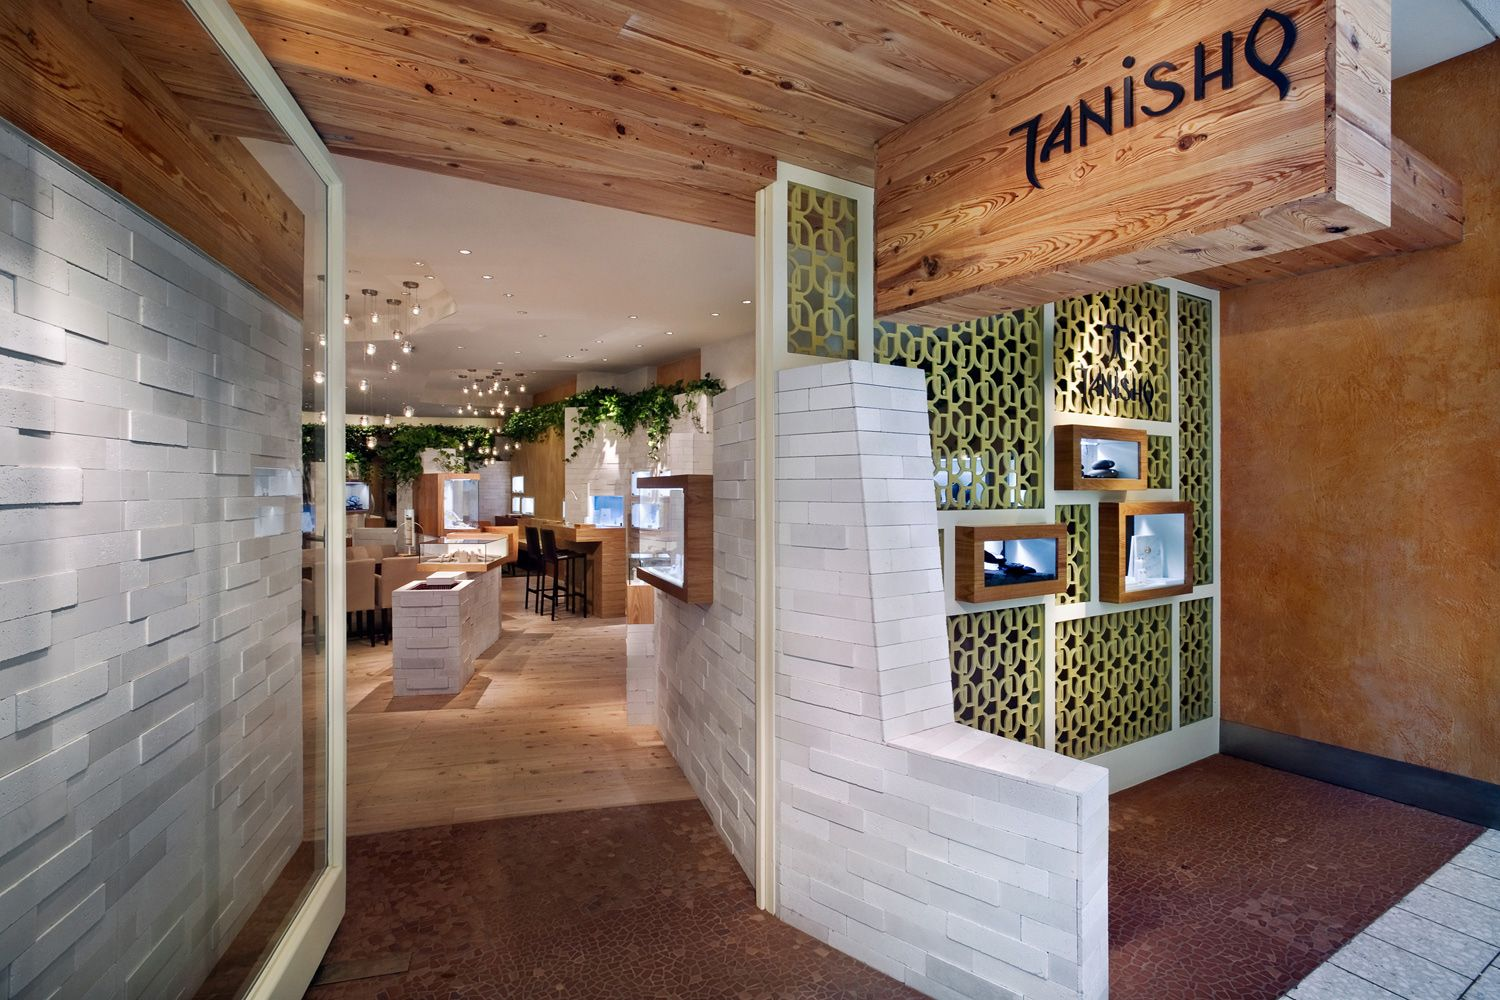 Tanishq jewelry store entrance in chicago il